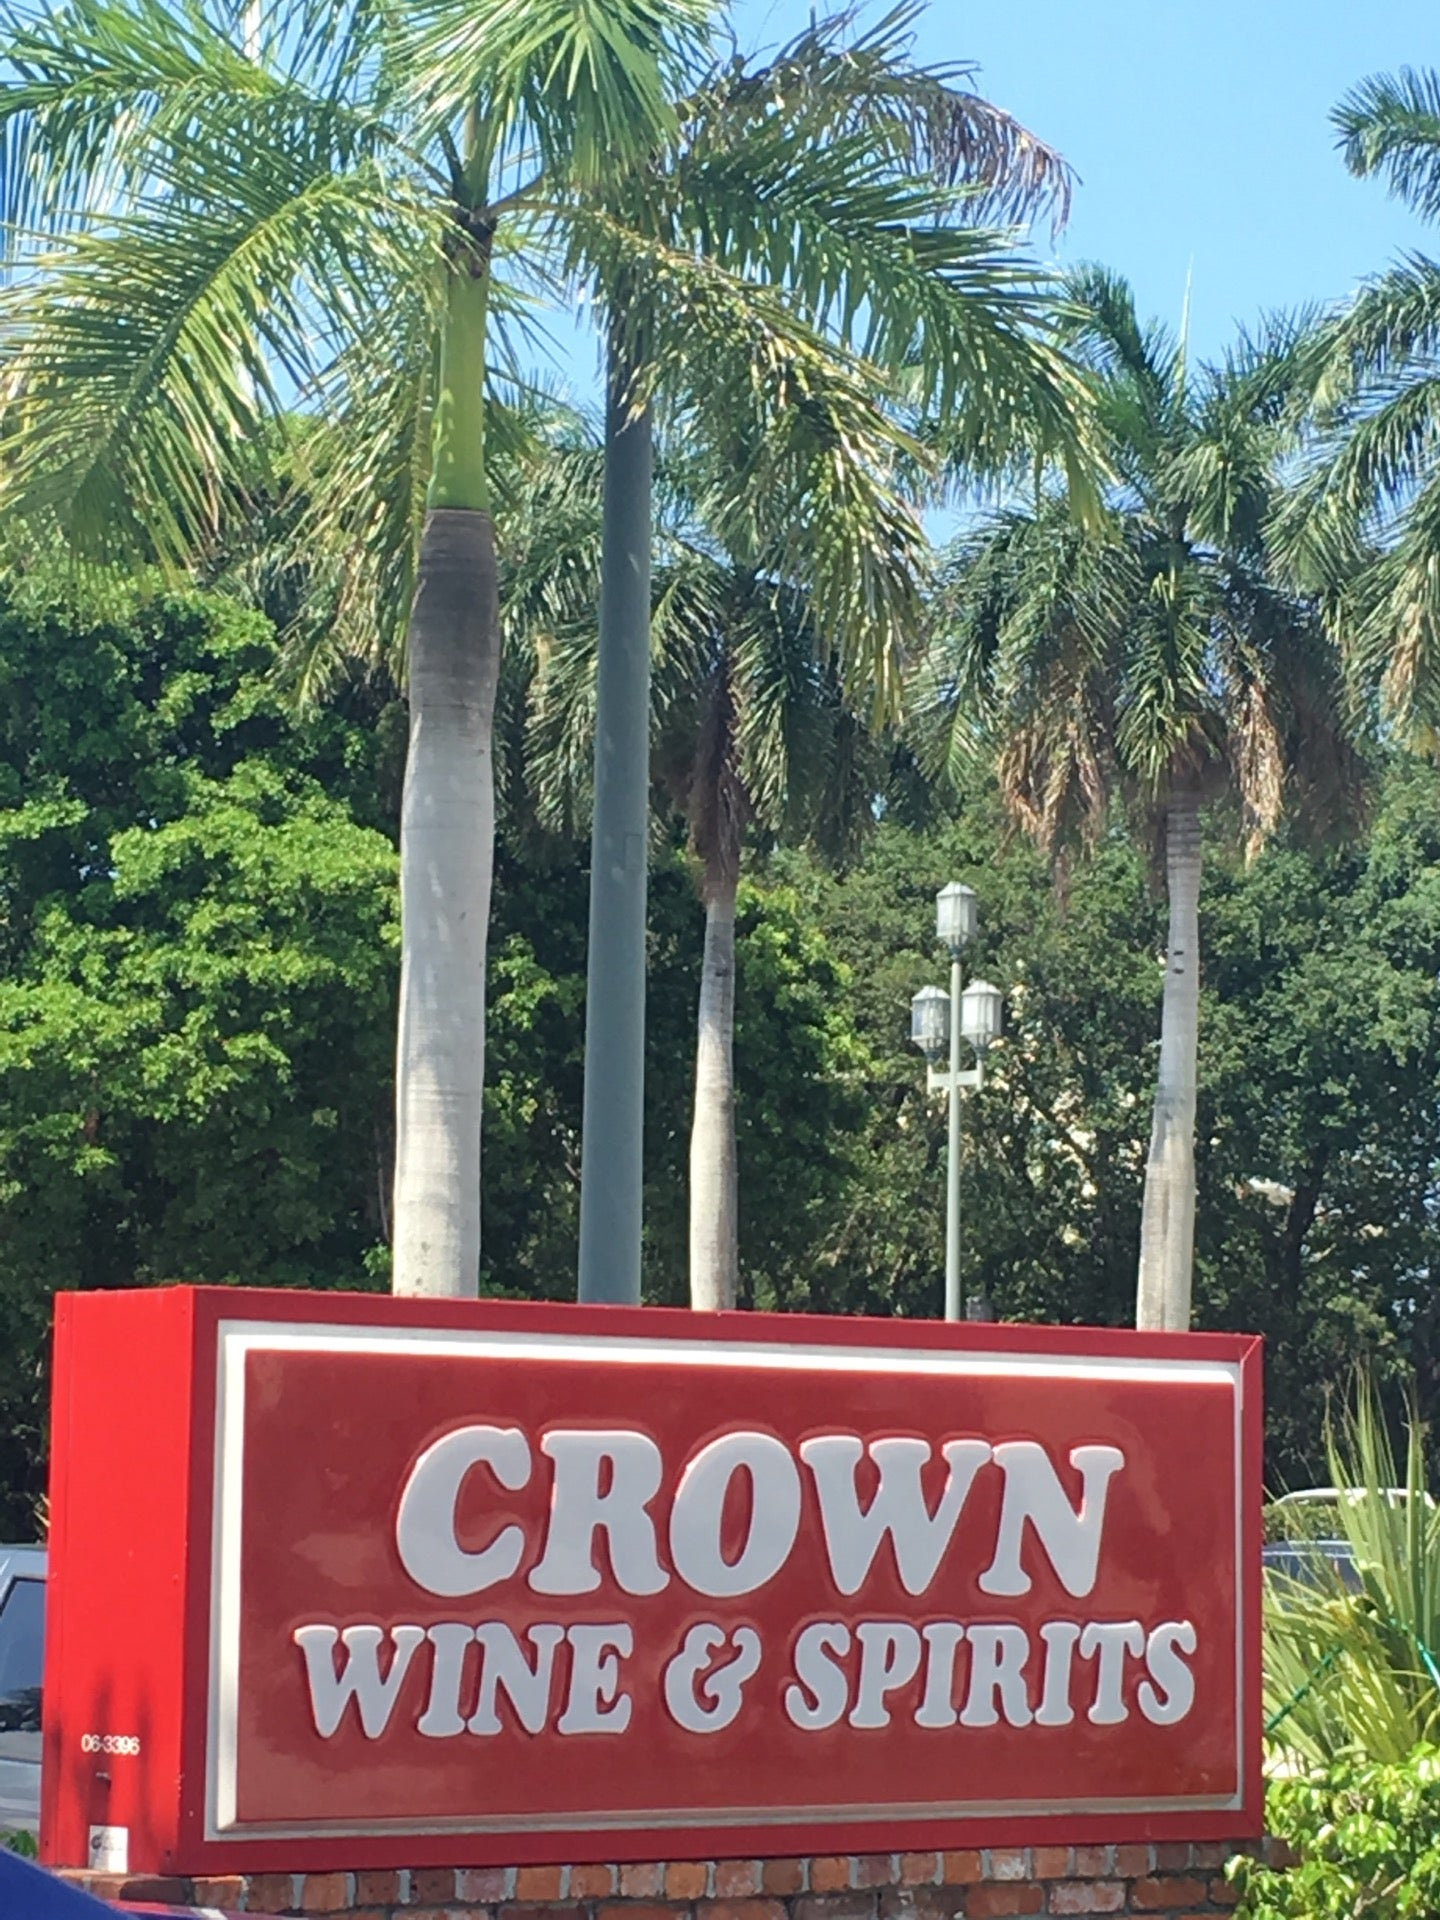 CROWN WINE & SPIRITS,